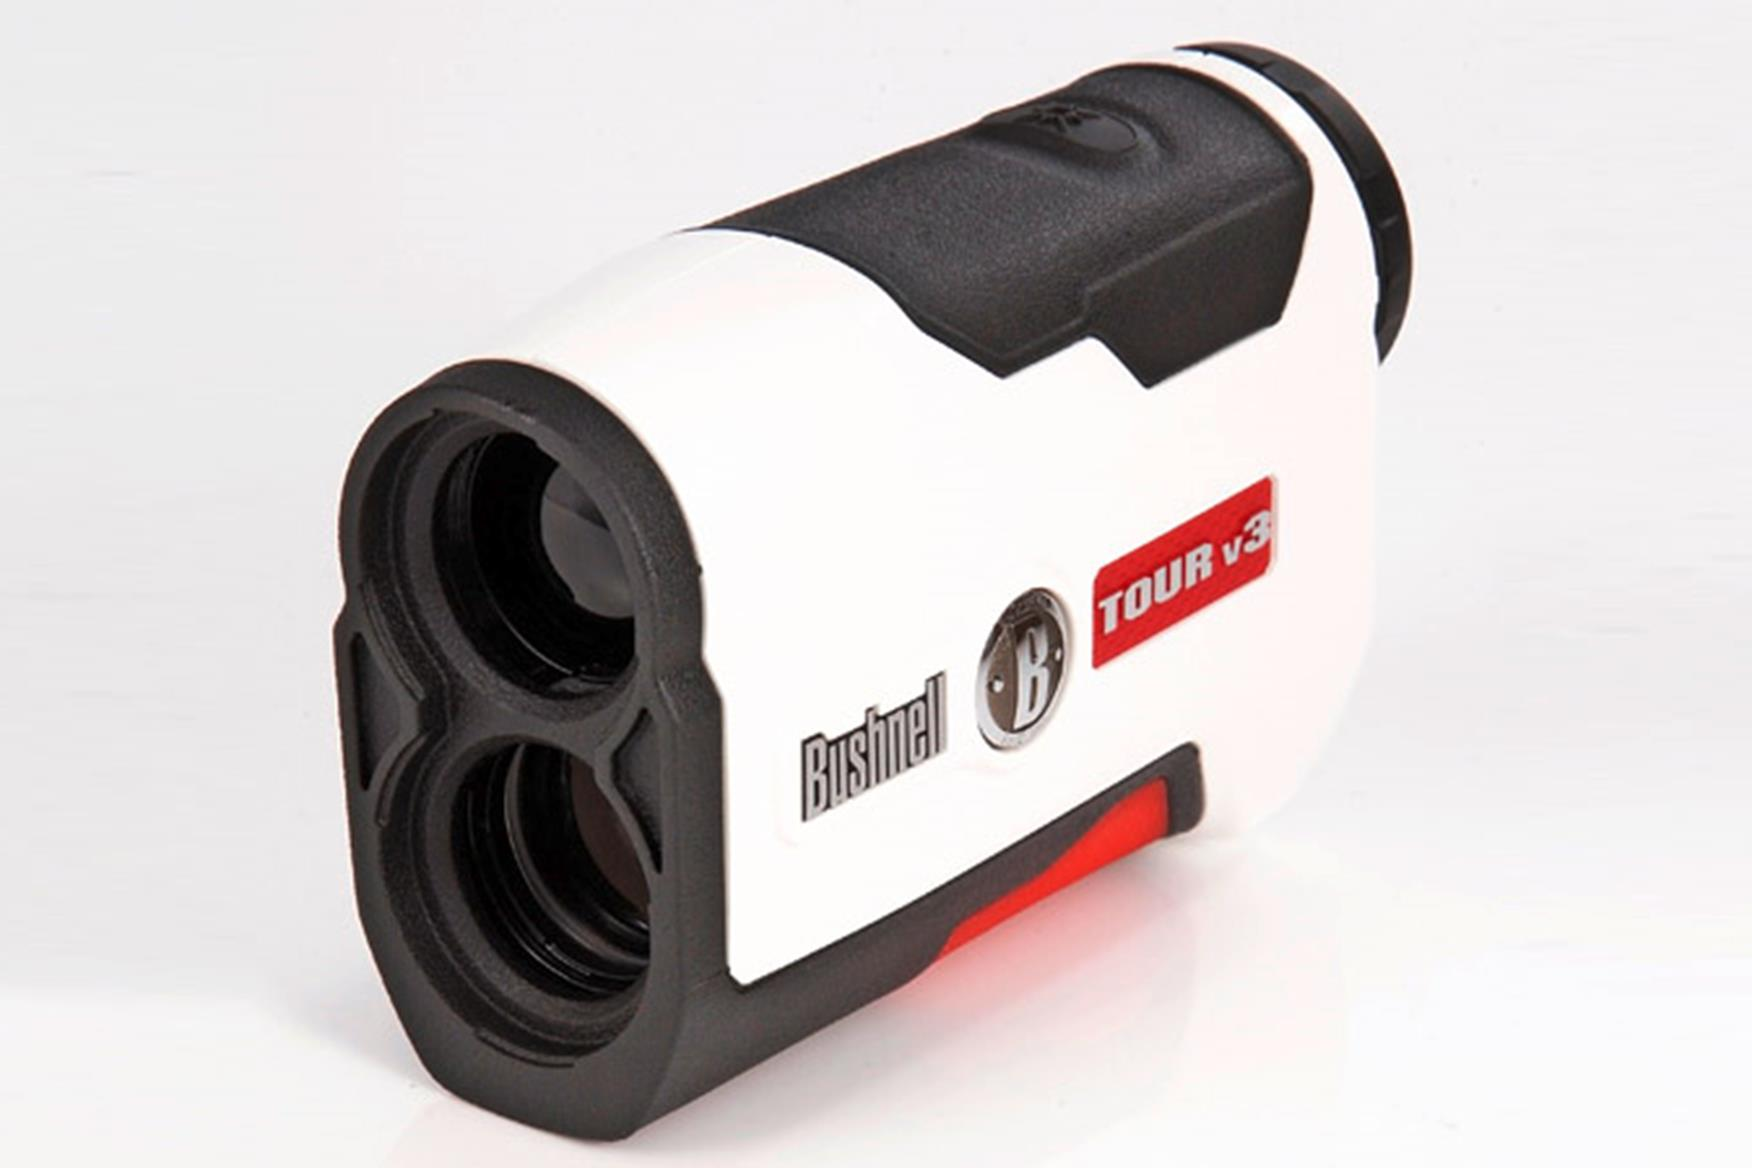 Bushnell Laser Entfernungsmesser Tour V3 : Bushnell tour v rangefinder review equipment reviews today s